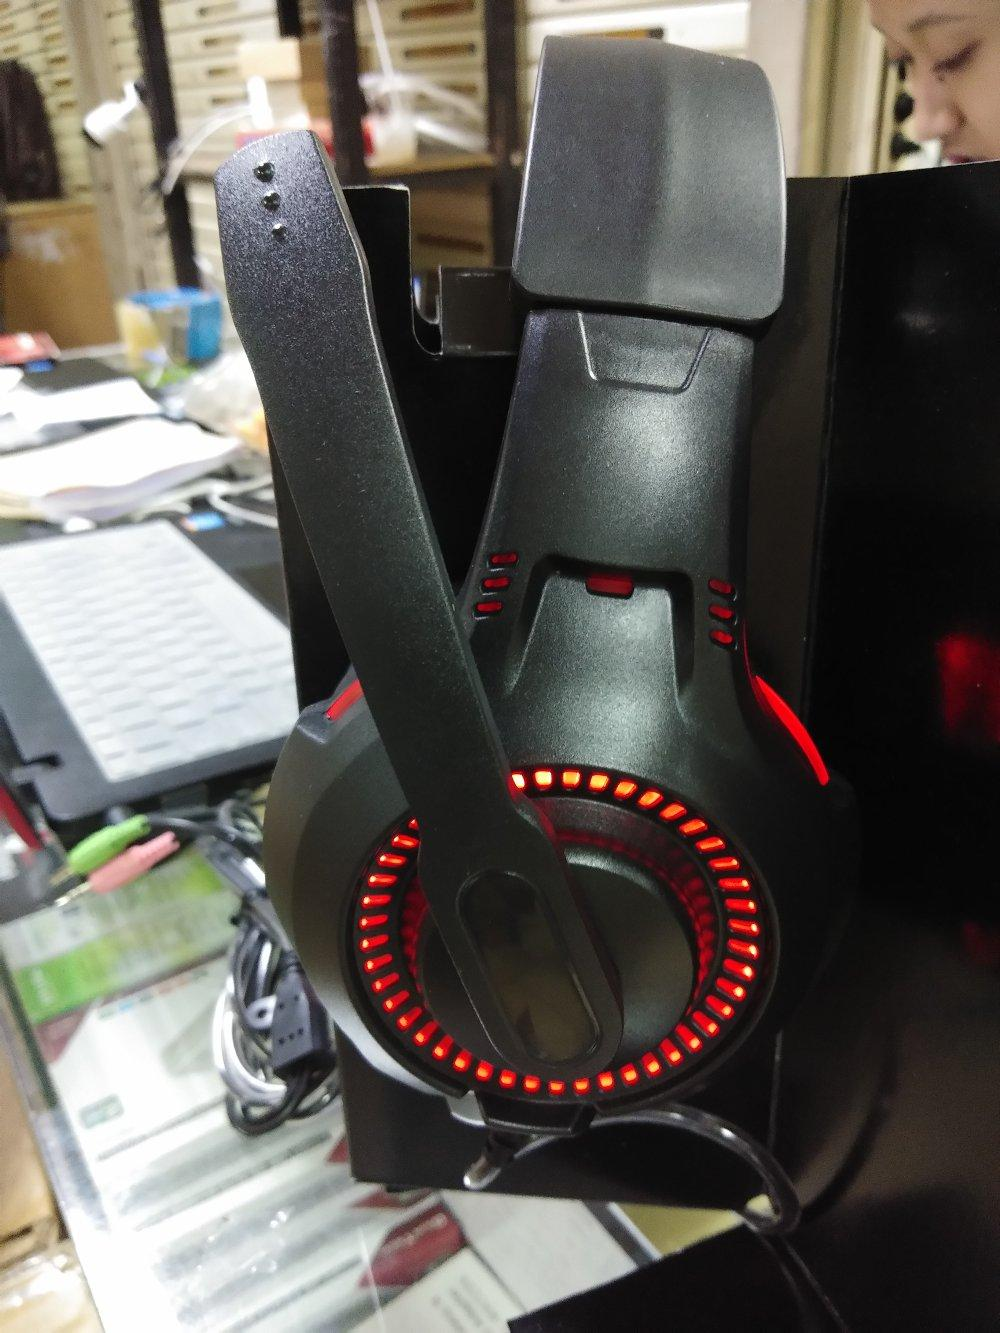 Buy Sell Cheapest Nyk Gaming Headset Best Quality Product Deals Hs P10 Usb 71 Rgb N06